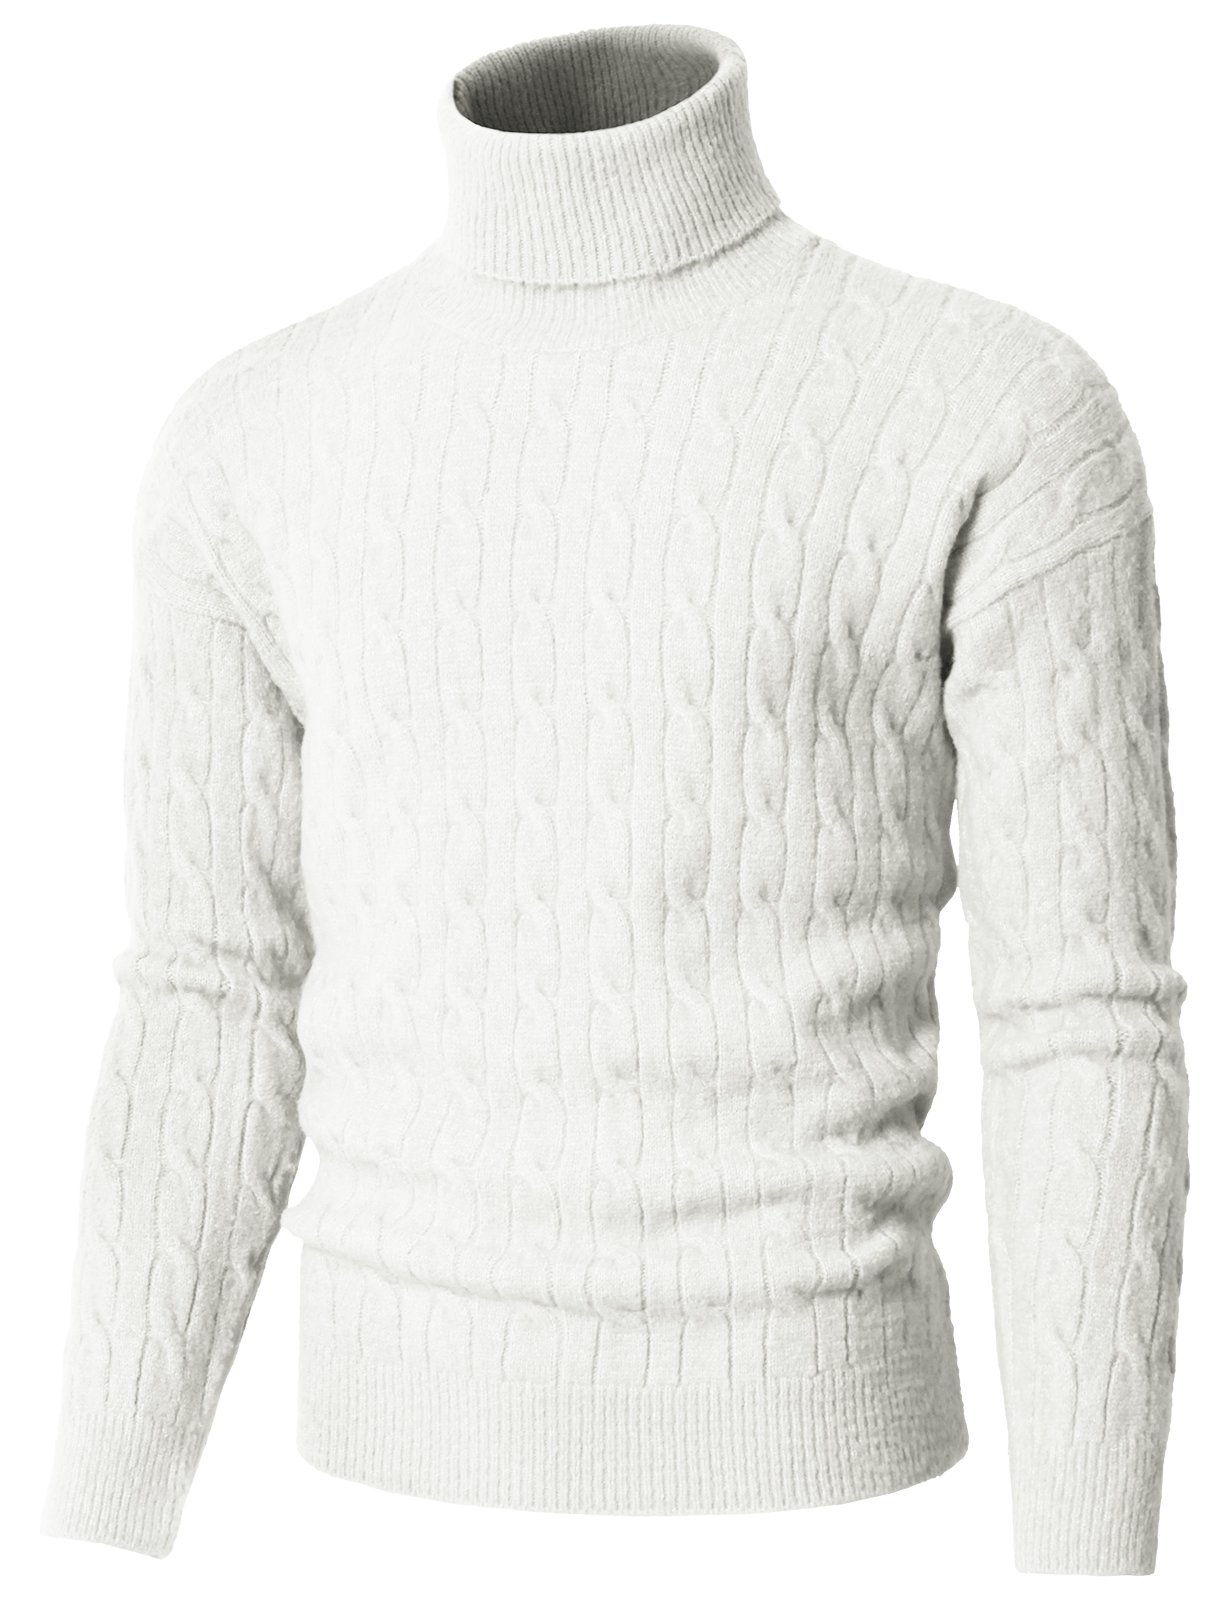 H2H Men's Cable Turtleneck Sweater Of Various Colors Ivory US M/Asia M (KMOSWL0235)